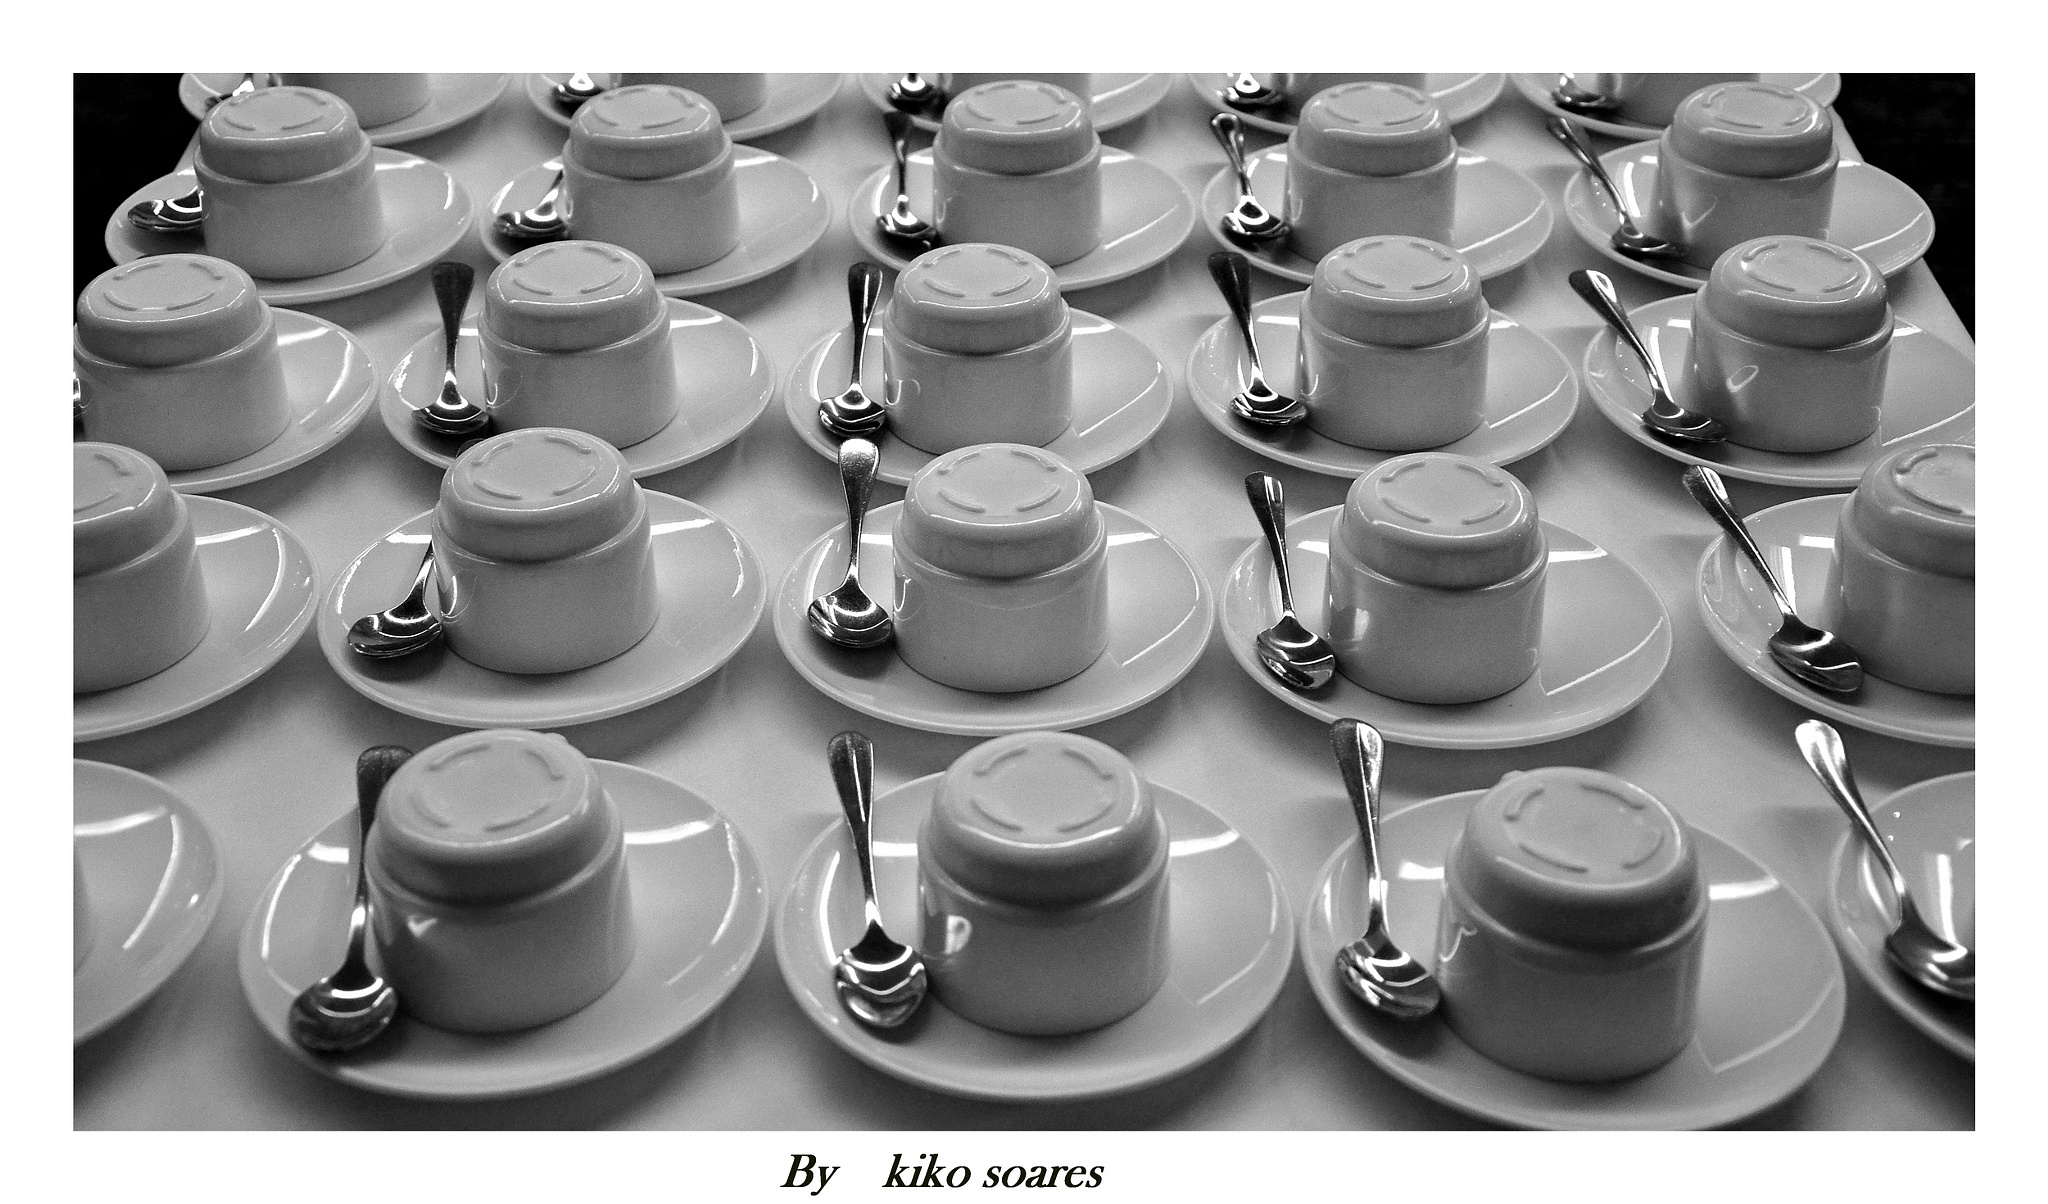 let's have a coffee by kiko soares